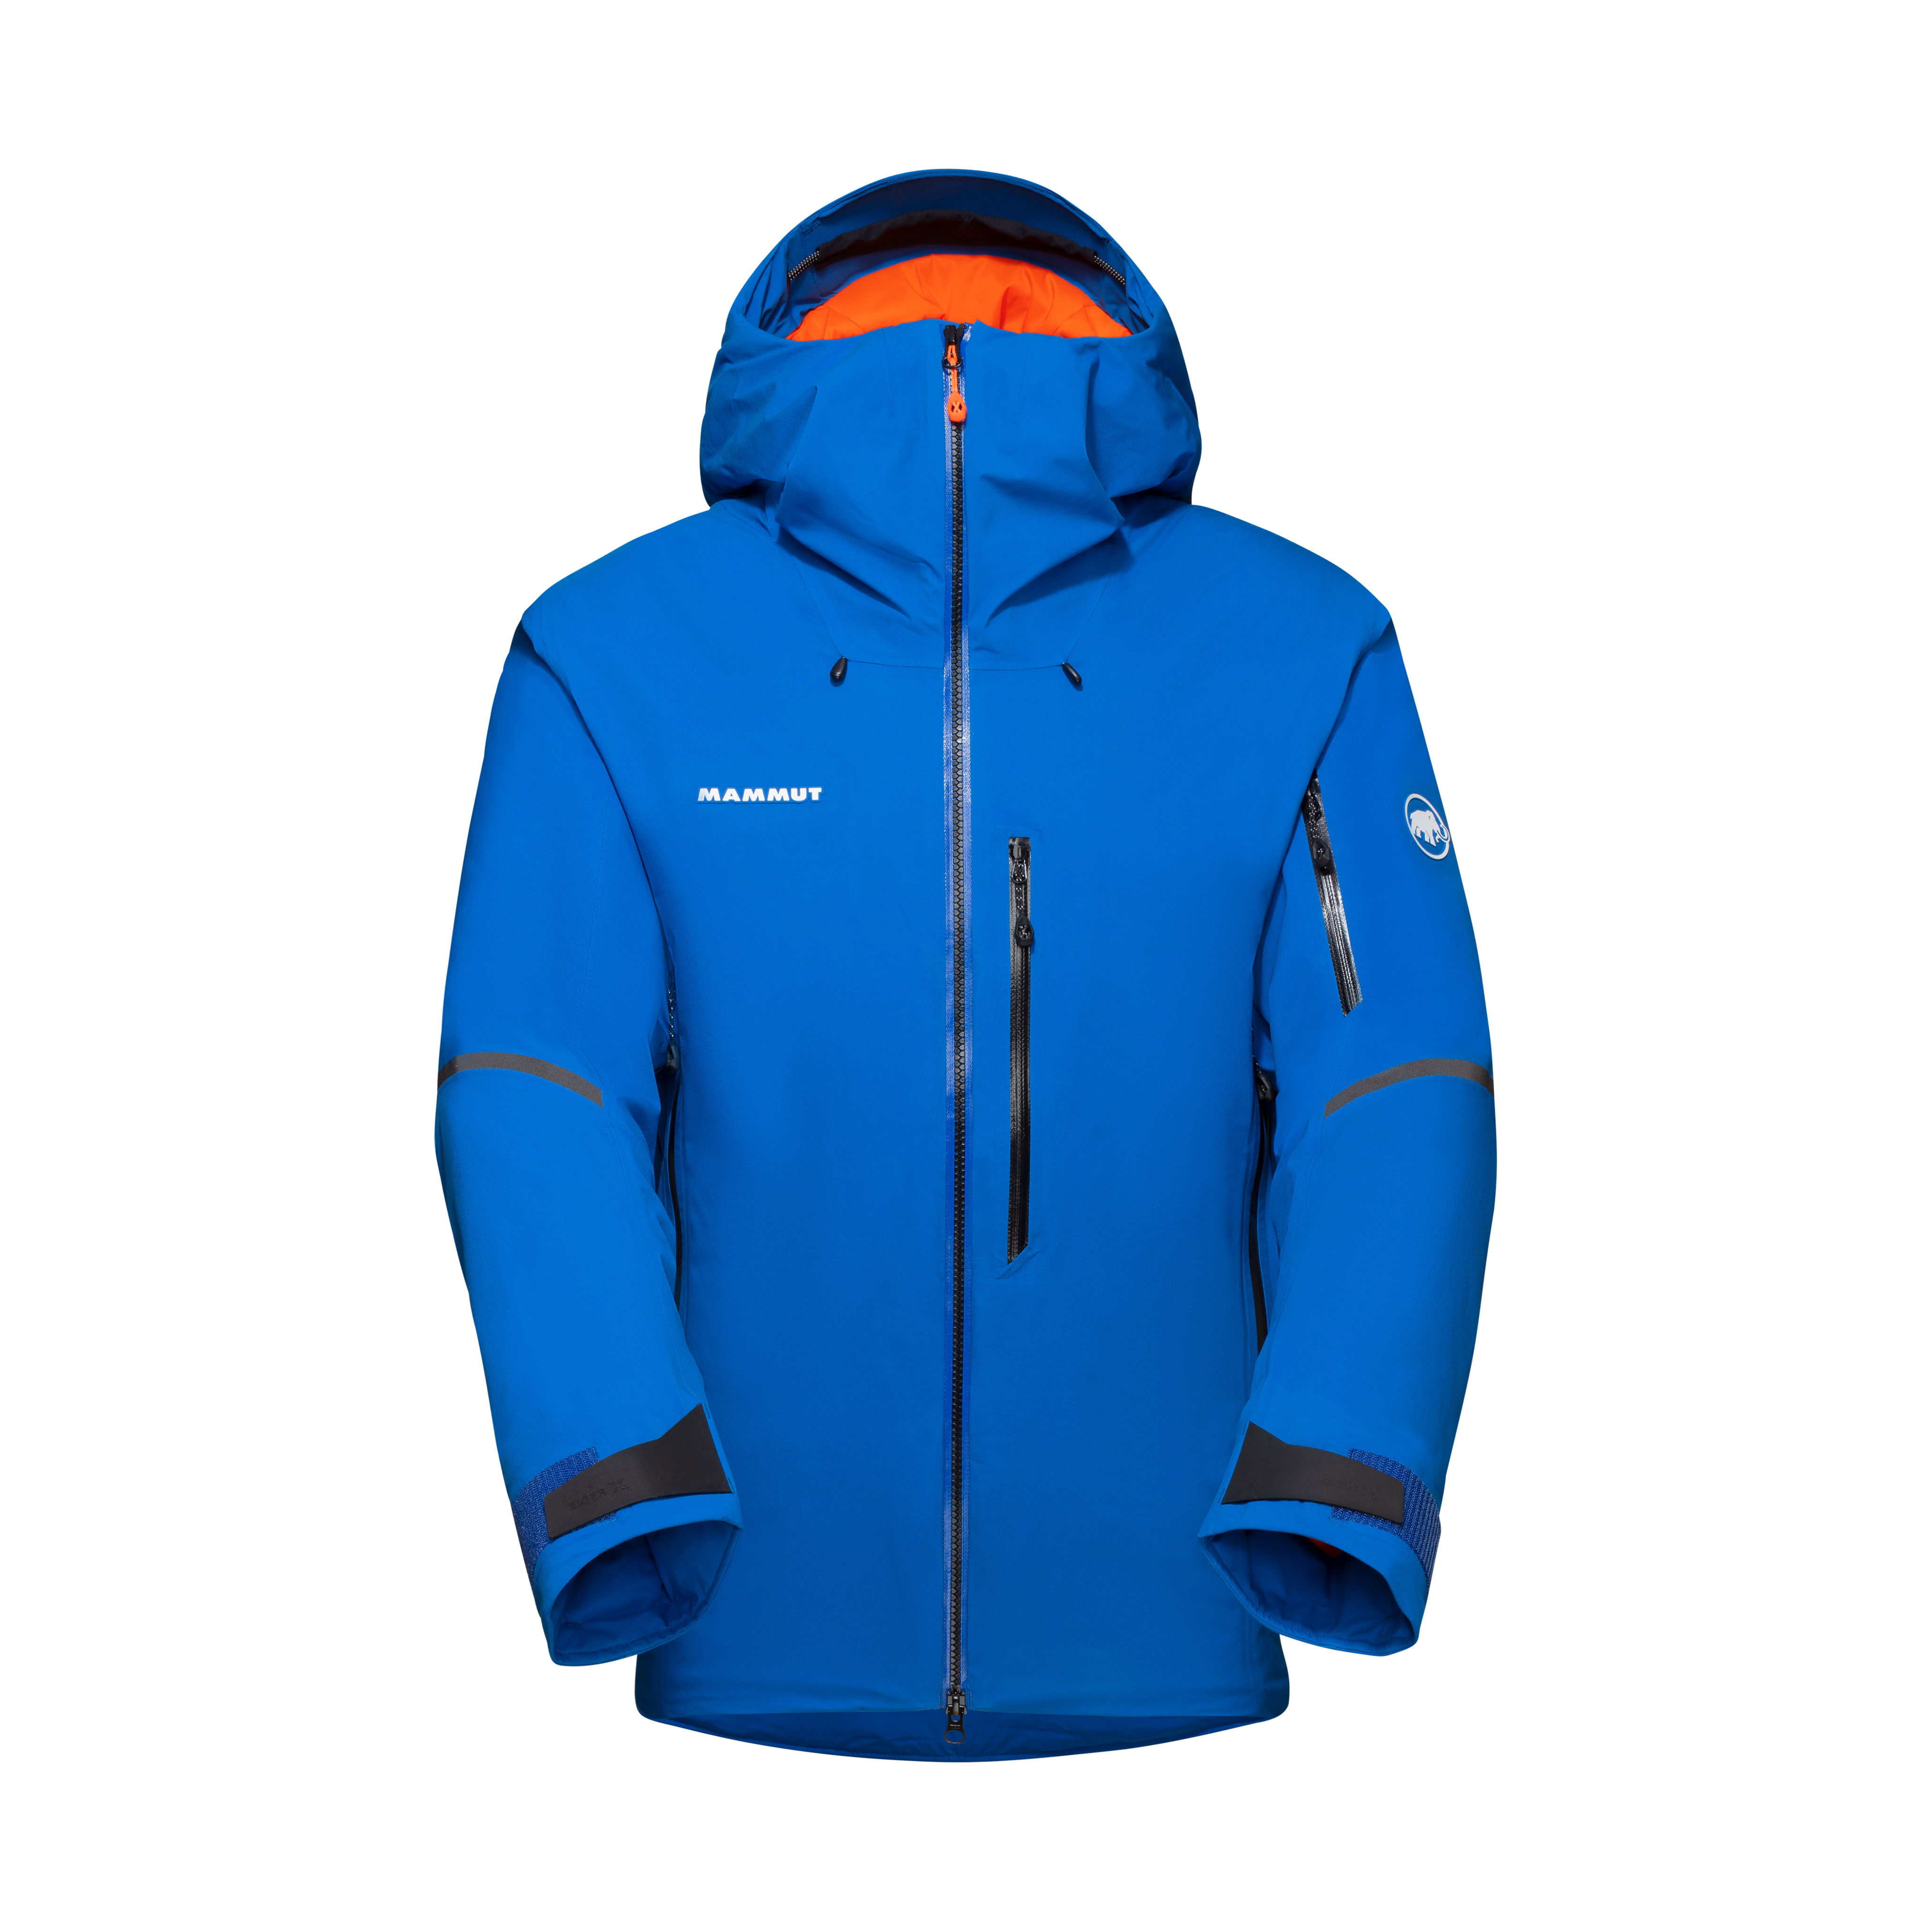 Nordwand Thermo HS Hooded Jacket Men - azurit, S thumbnail